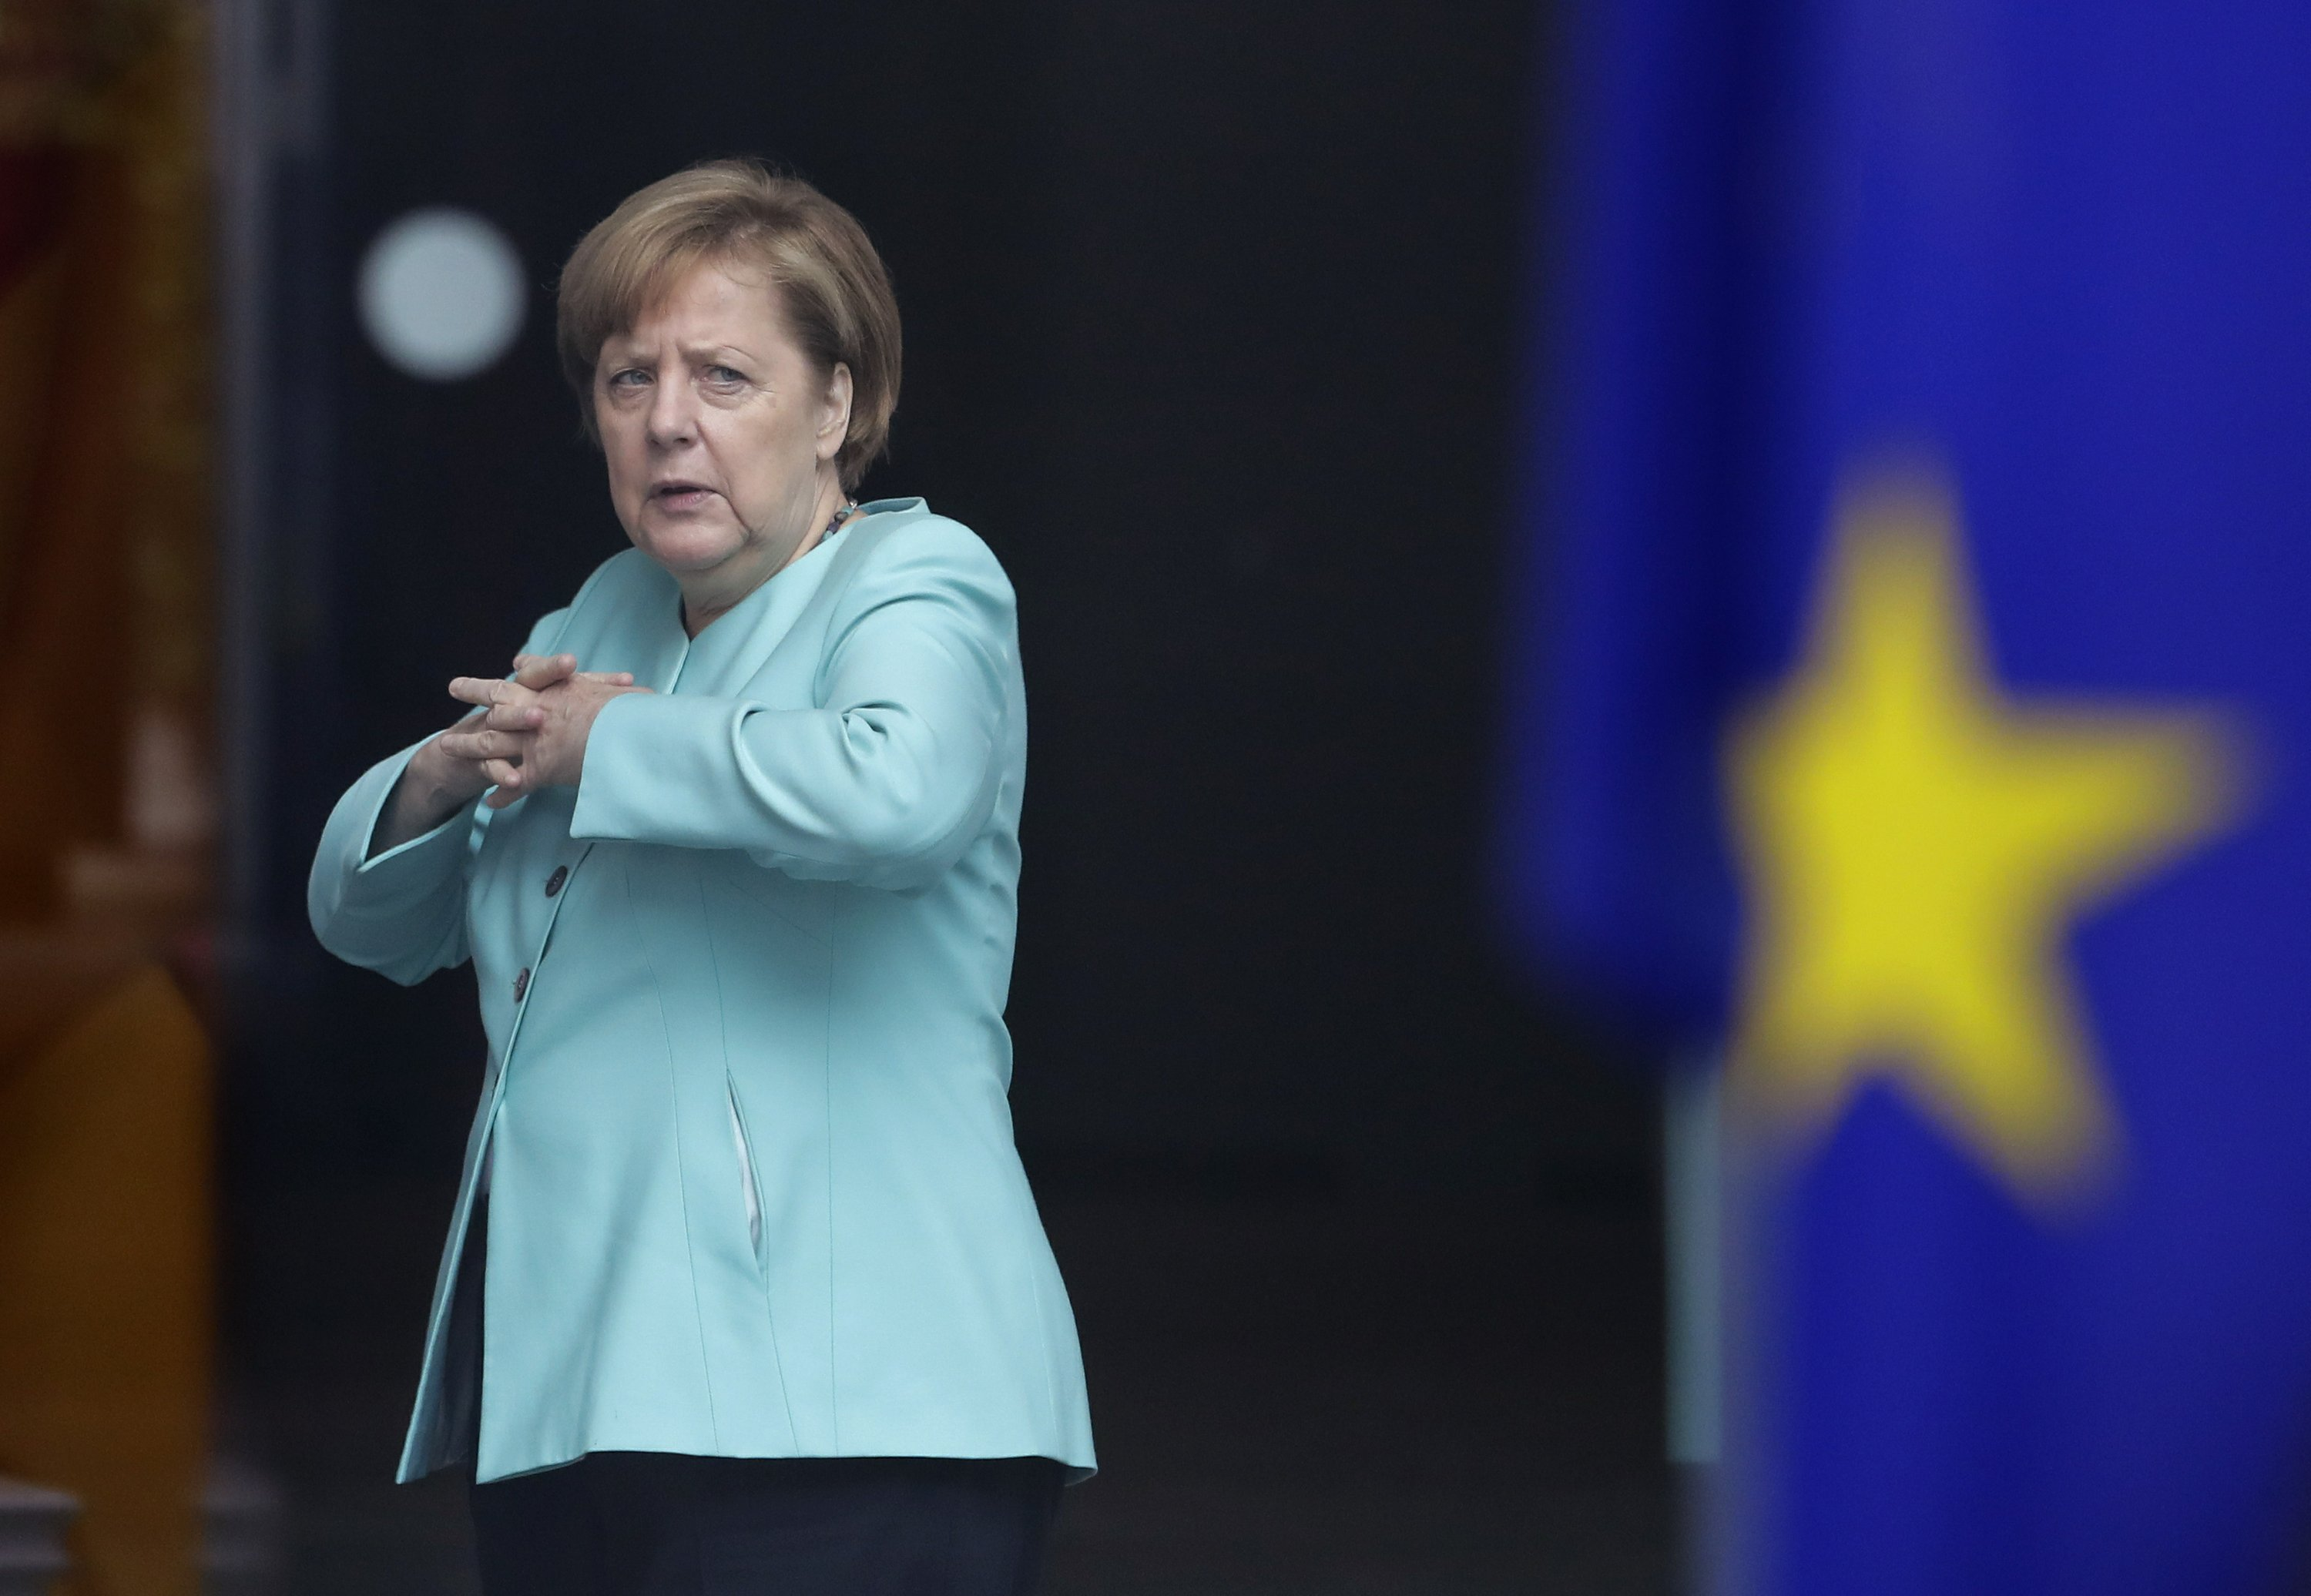 Merkel stands by suggestion Europe can't rely fully on US